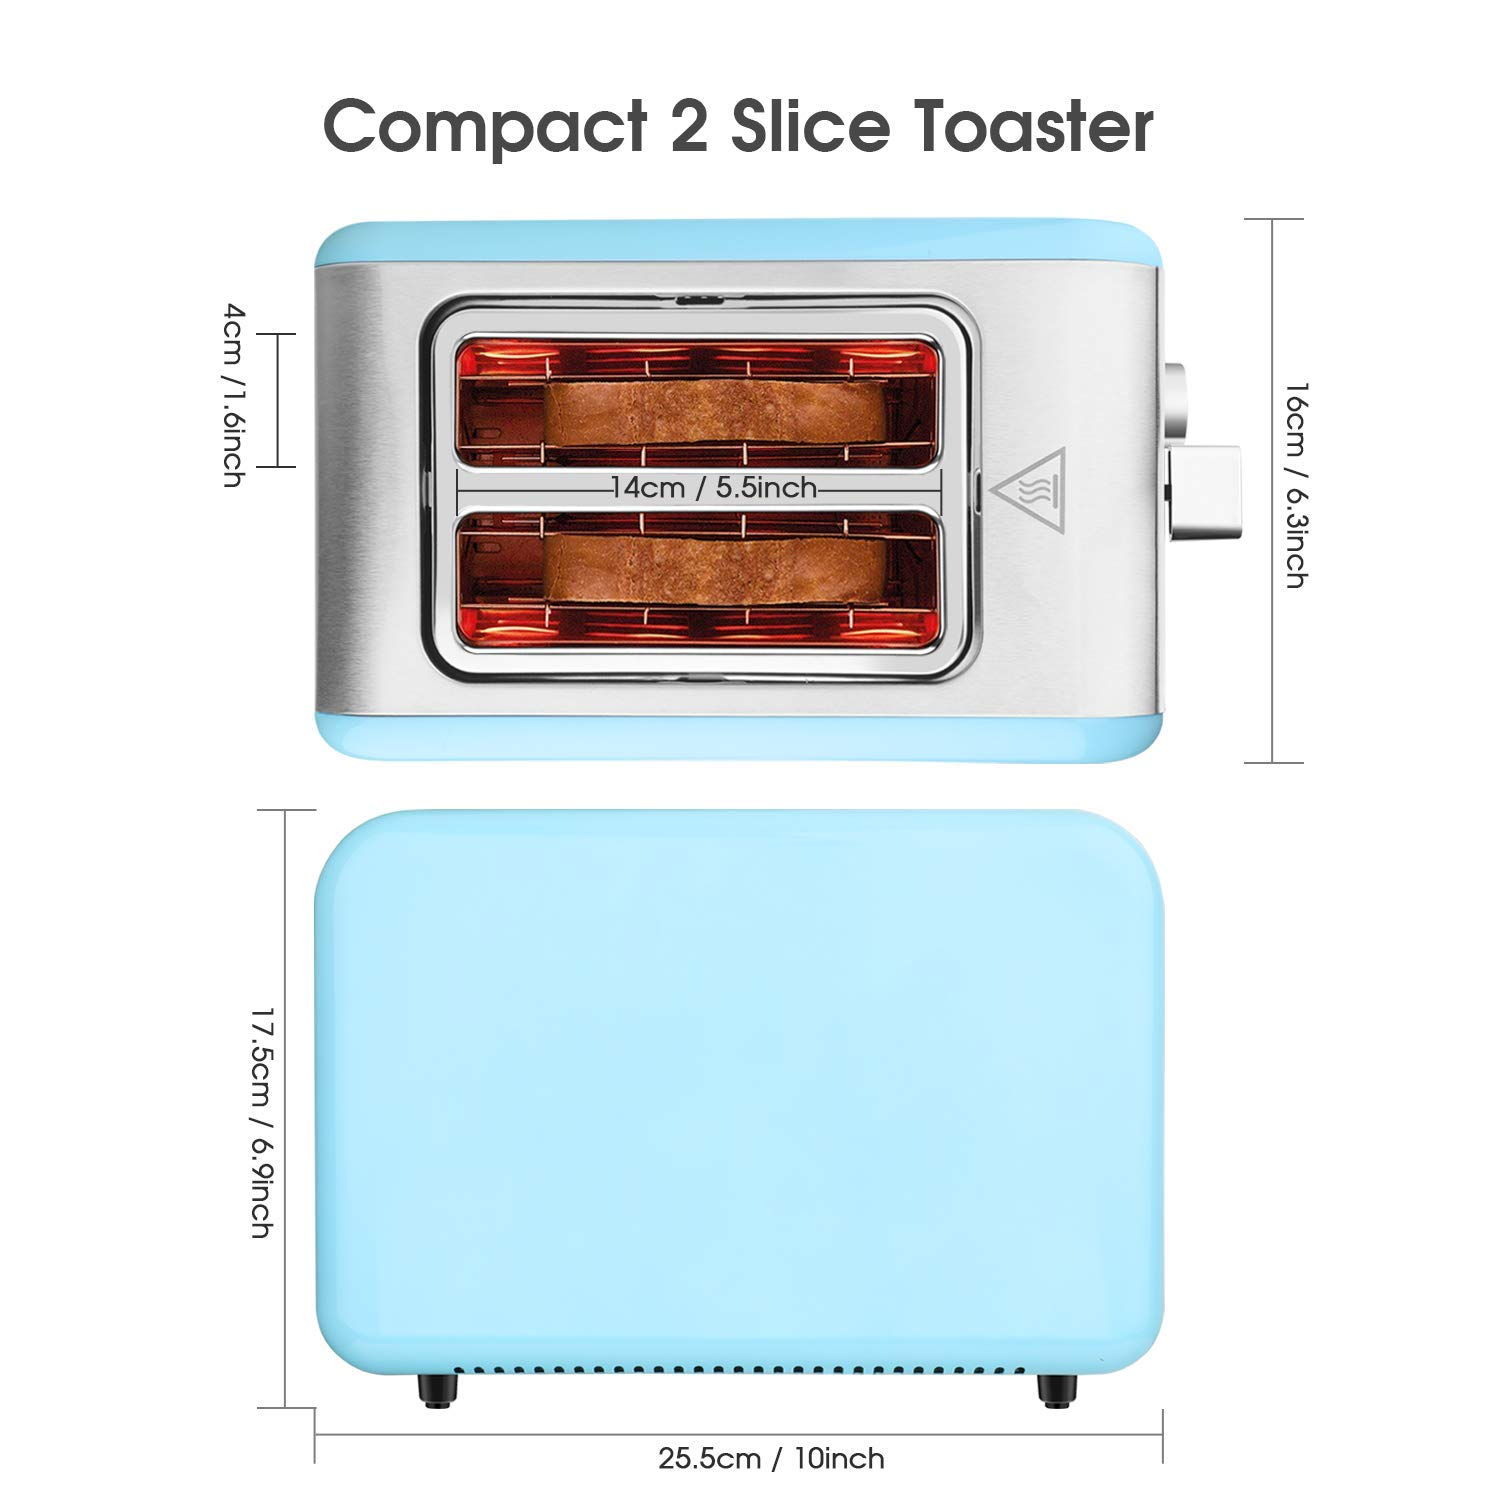 MKG 2 Slice Toaster, Stainless Steel Bagel Toaster with Extra Wide Slots, 6 Shade Settings, Bagel/Defrost/Cancel Function, Removable Crumb Tray, High Lift Lever, Blue